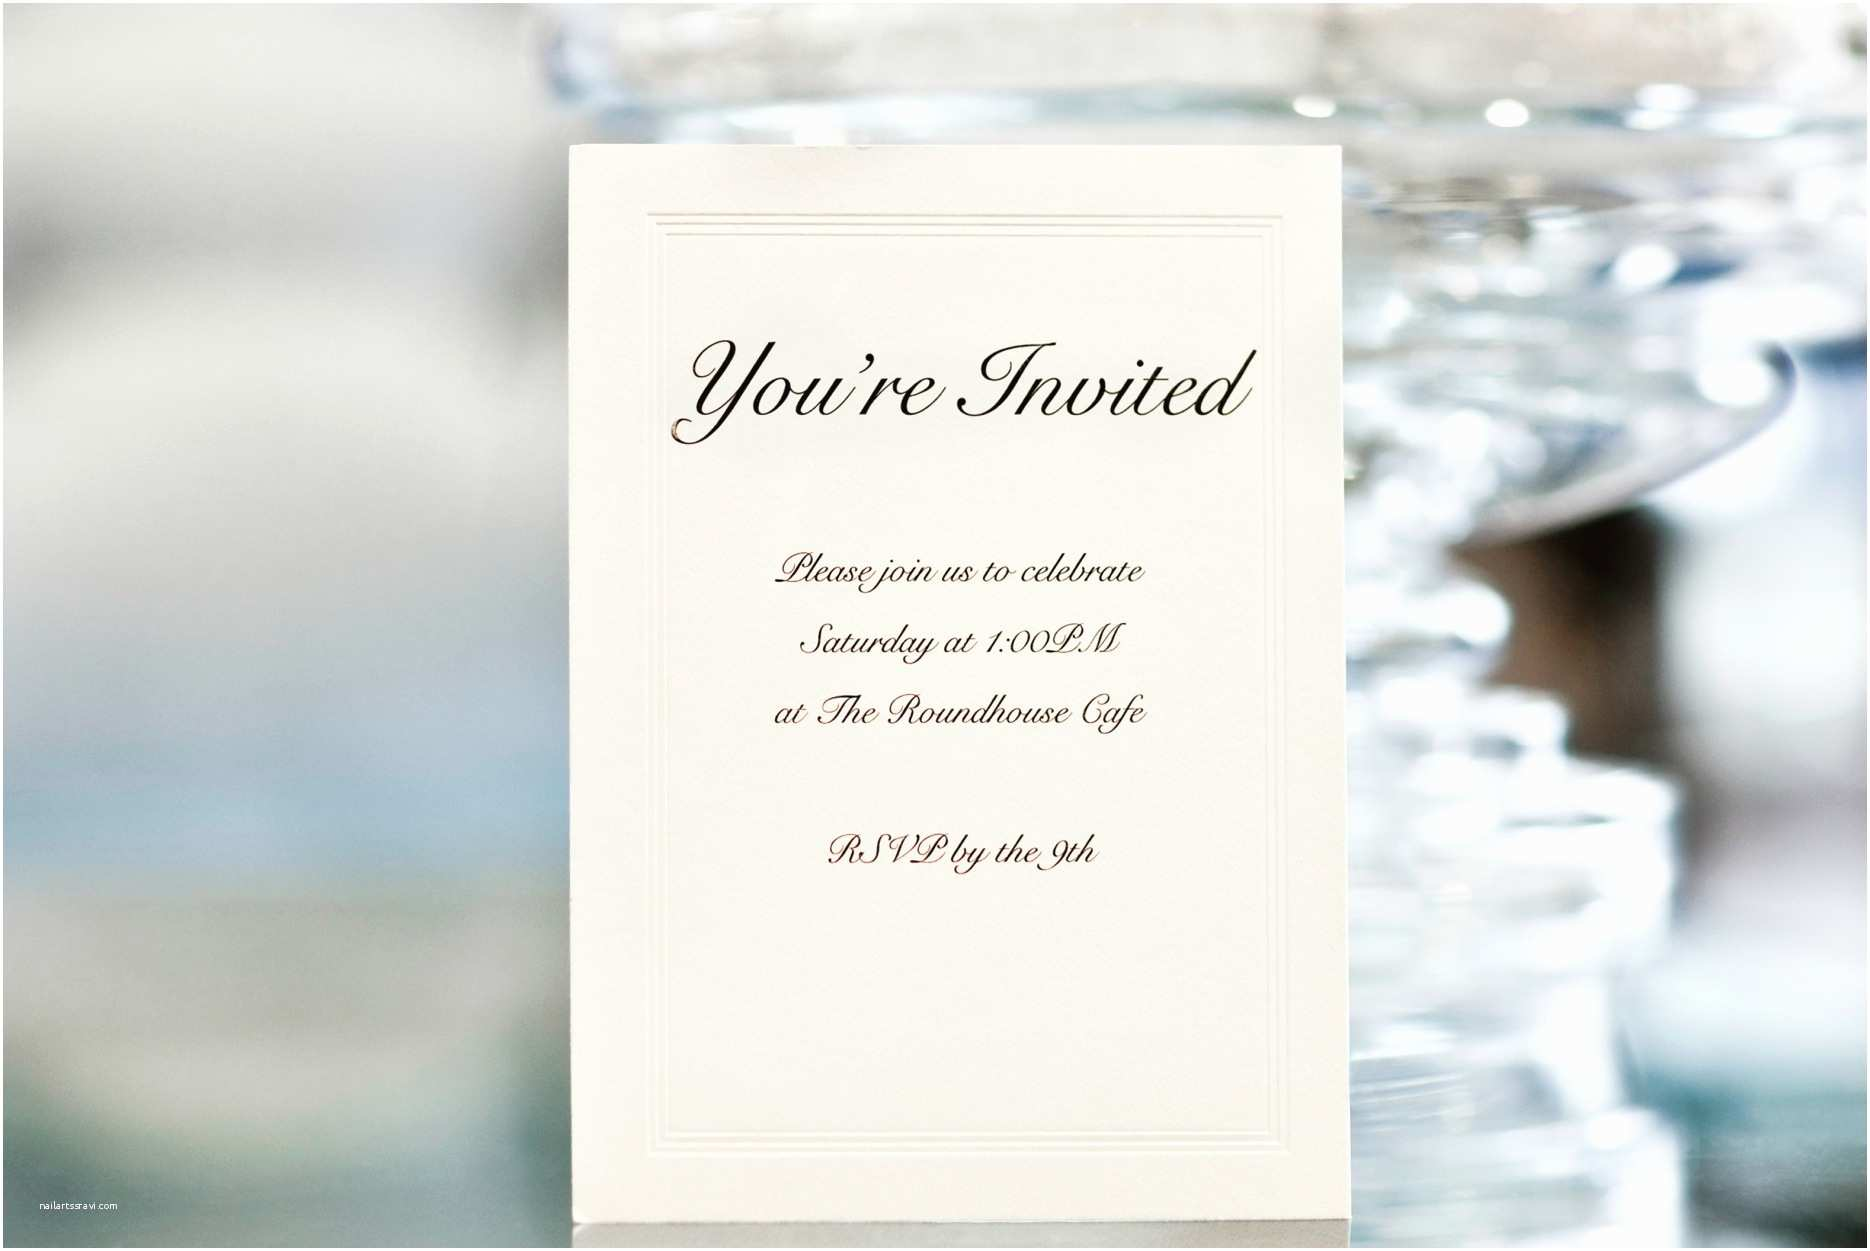 Wedding Invitation Sample Wording Ideas for Wedding Invitation Wording